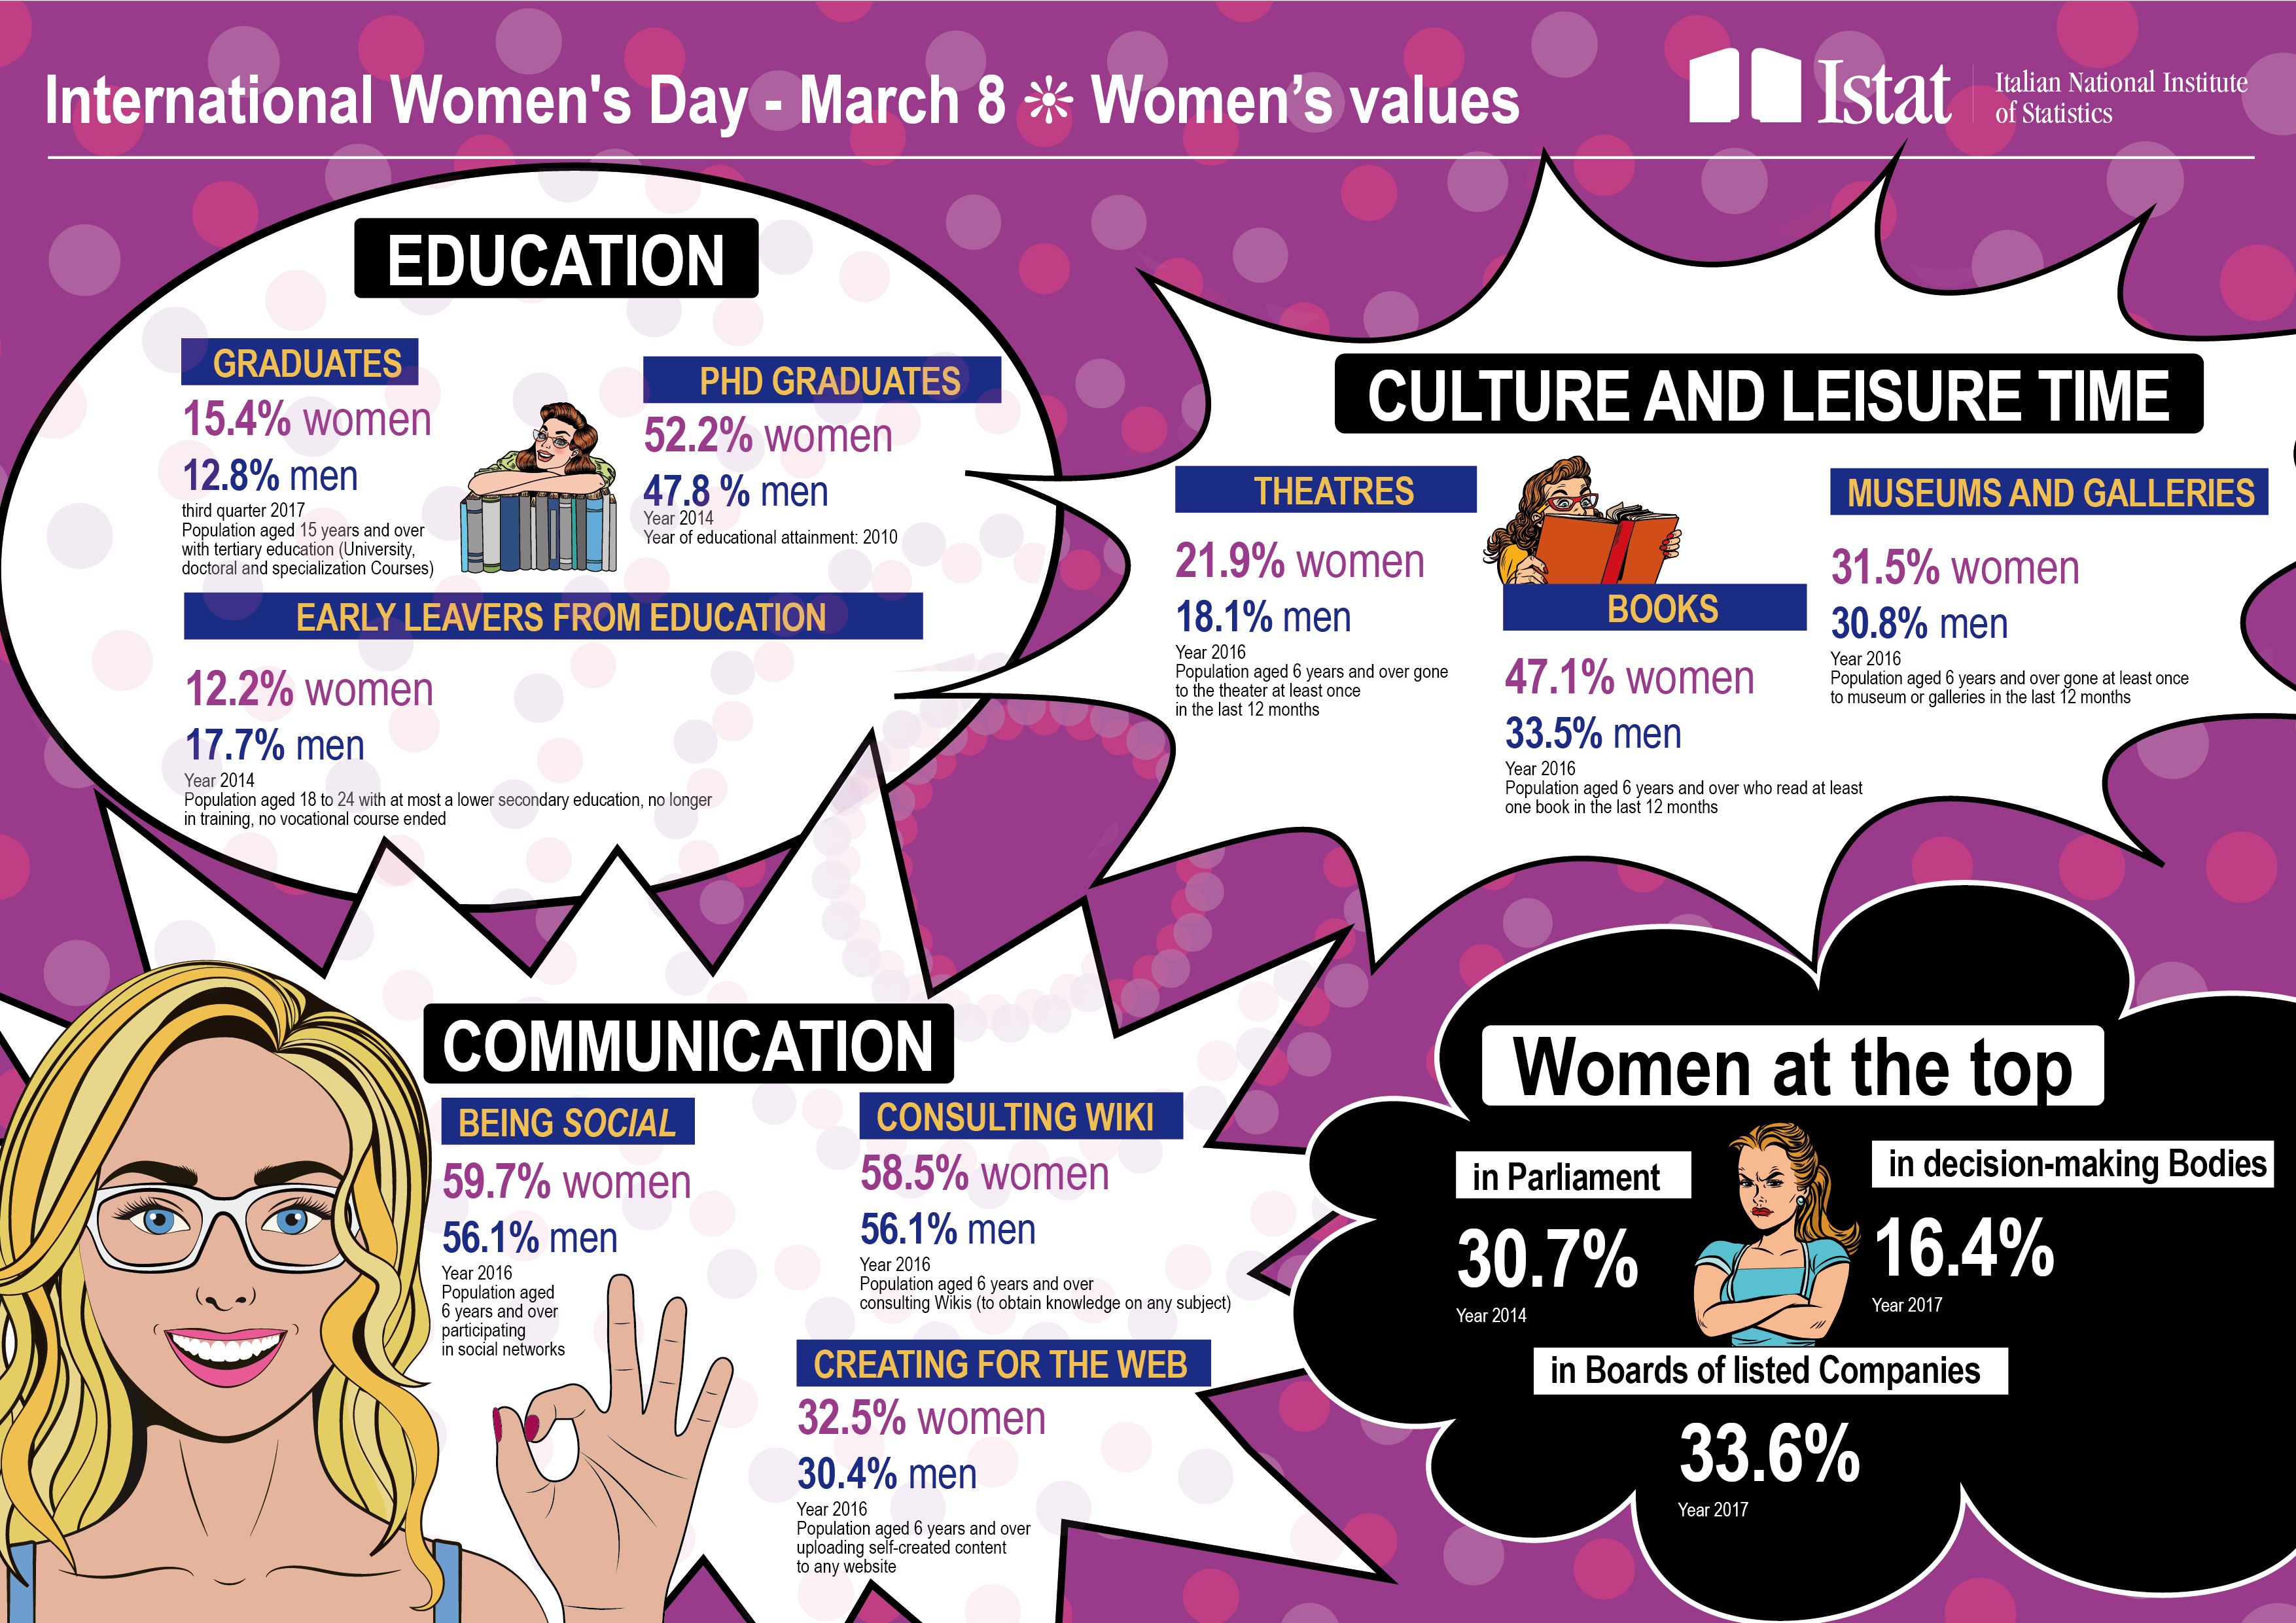 Infographic on women's values